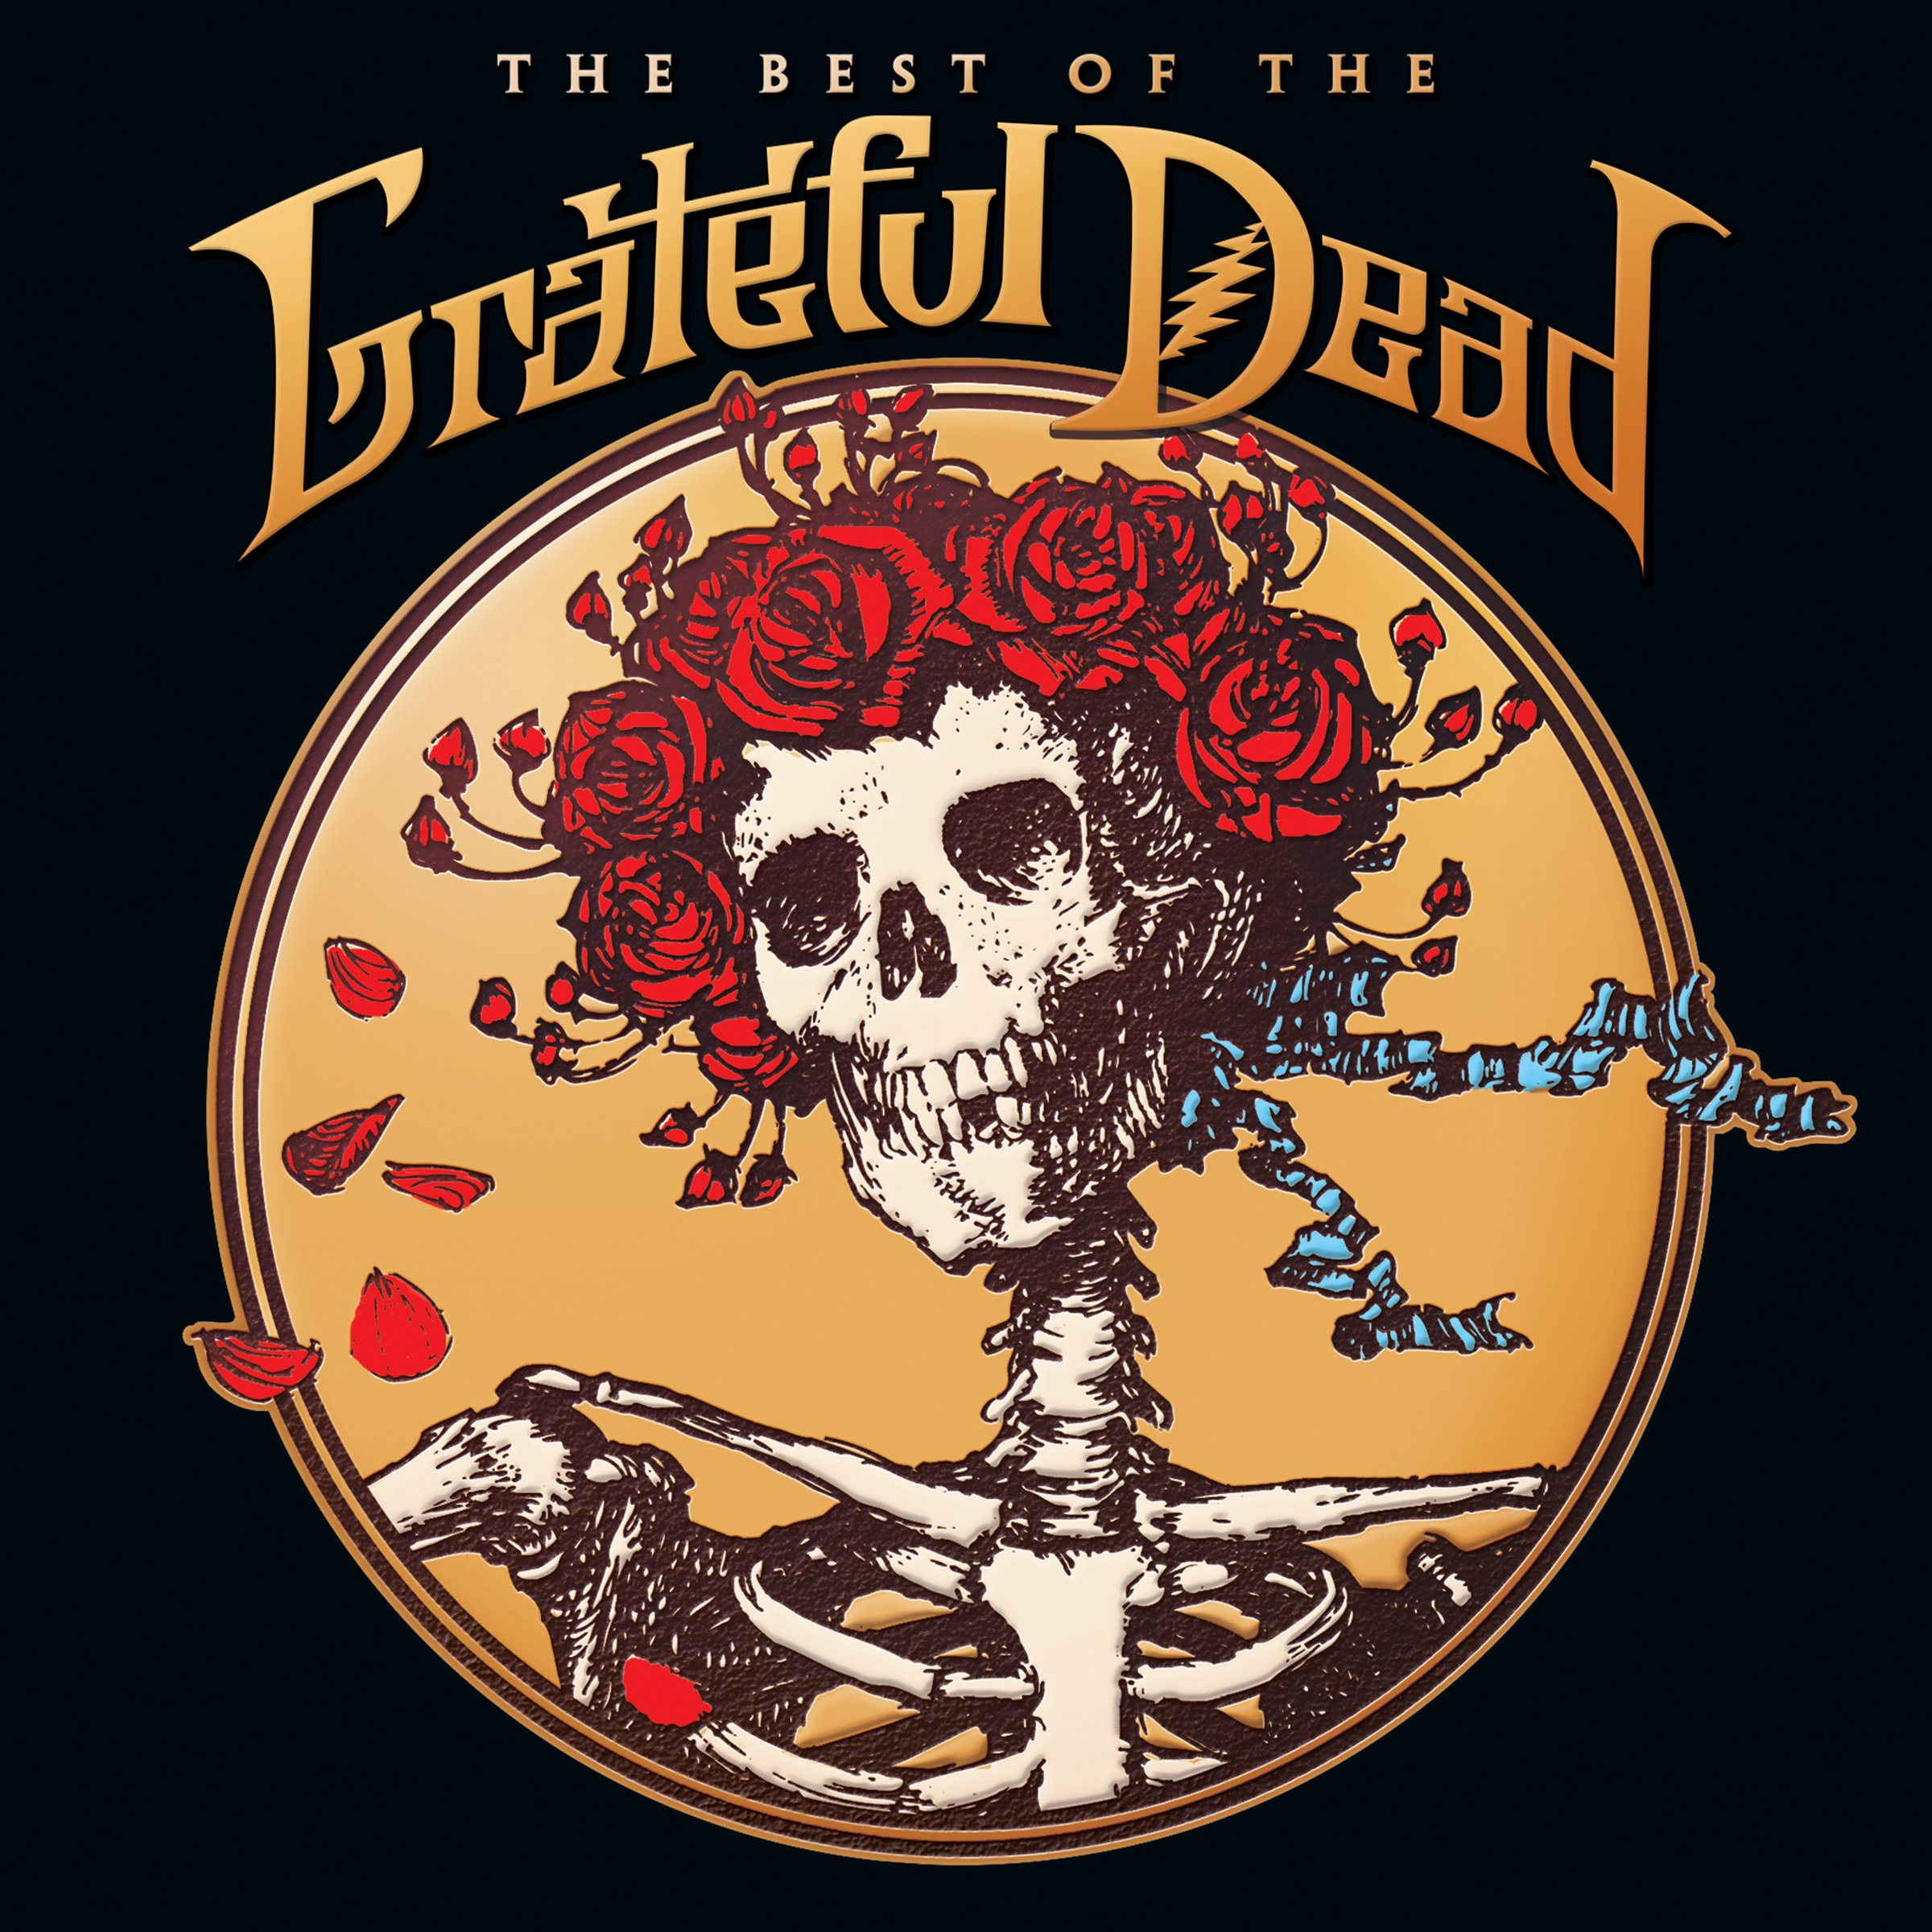 The Best Of The Grateful Dead (2CD) by Rhino